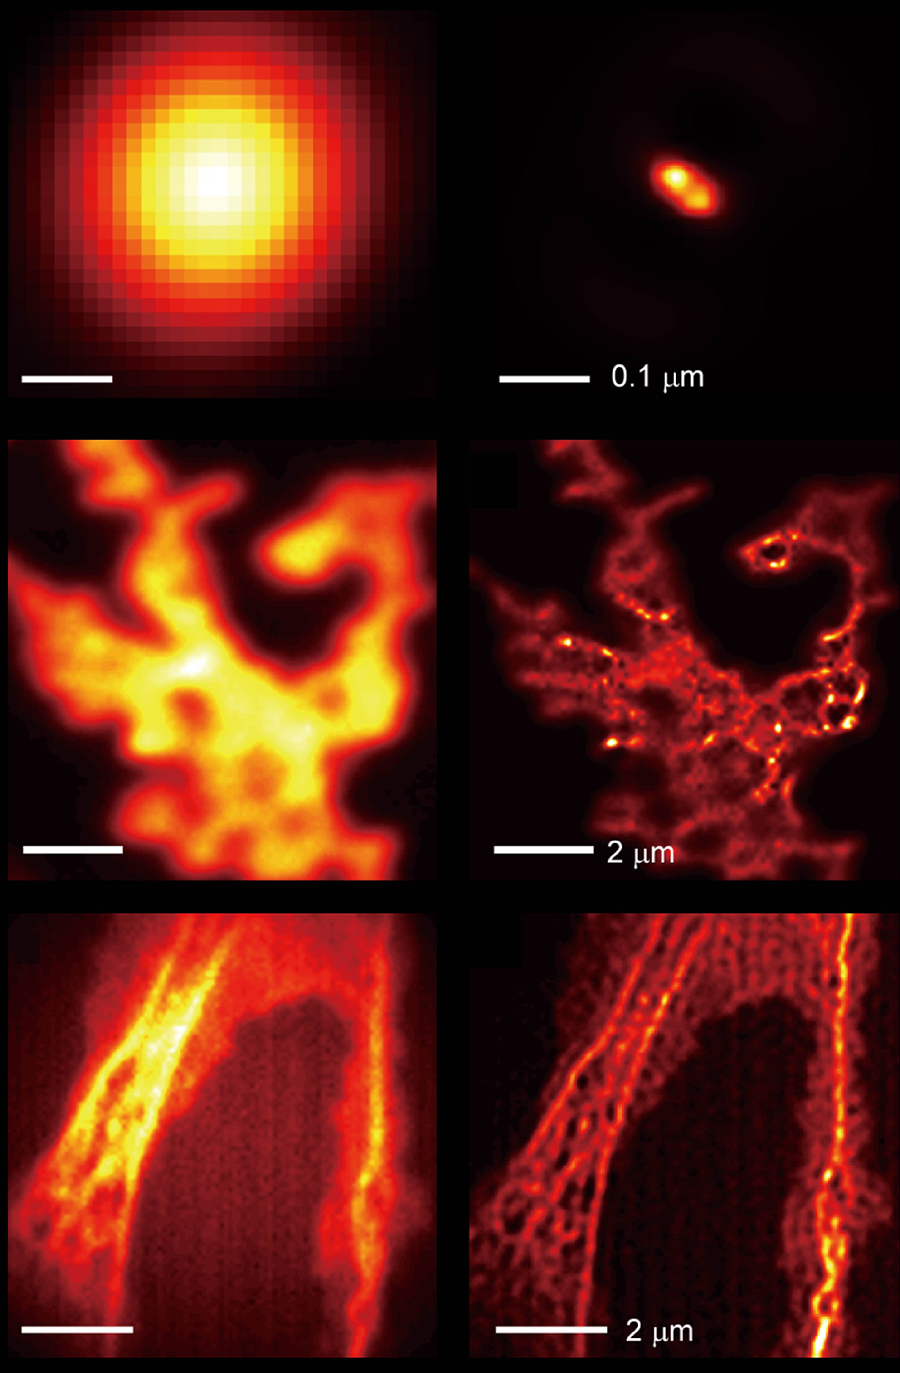 Microscope images displayed in orange against a black background.